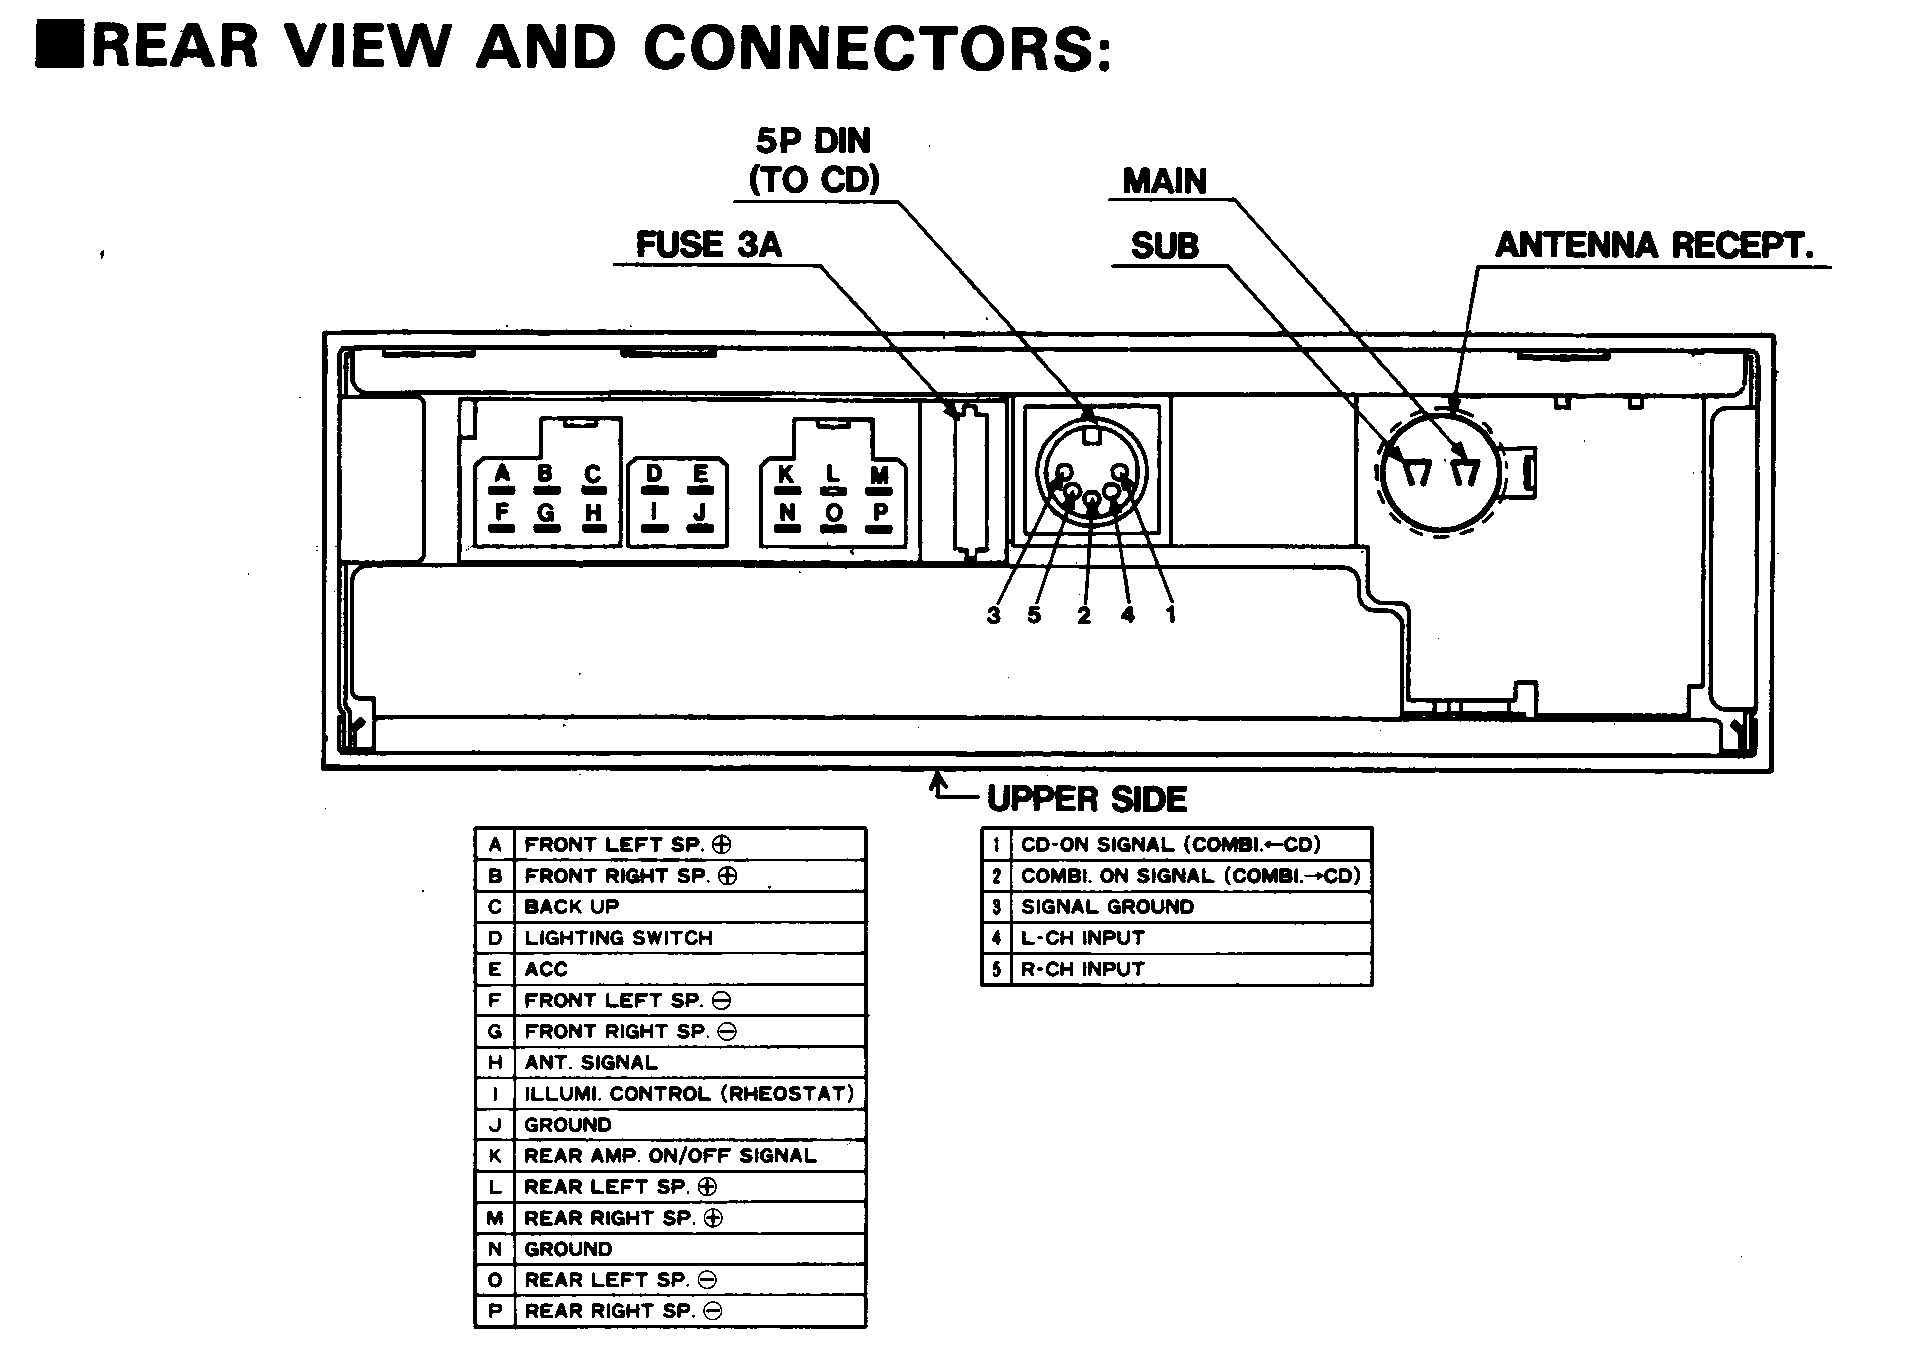 2008 Nissan Frontier Stereo Wiring Diagram 42 2007 Wireharnessnis03180201resize6652c475 Diagrams 512507 2000 Where Can